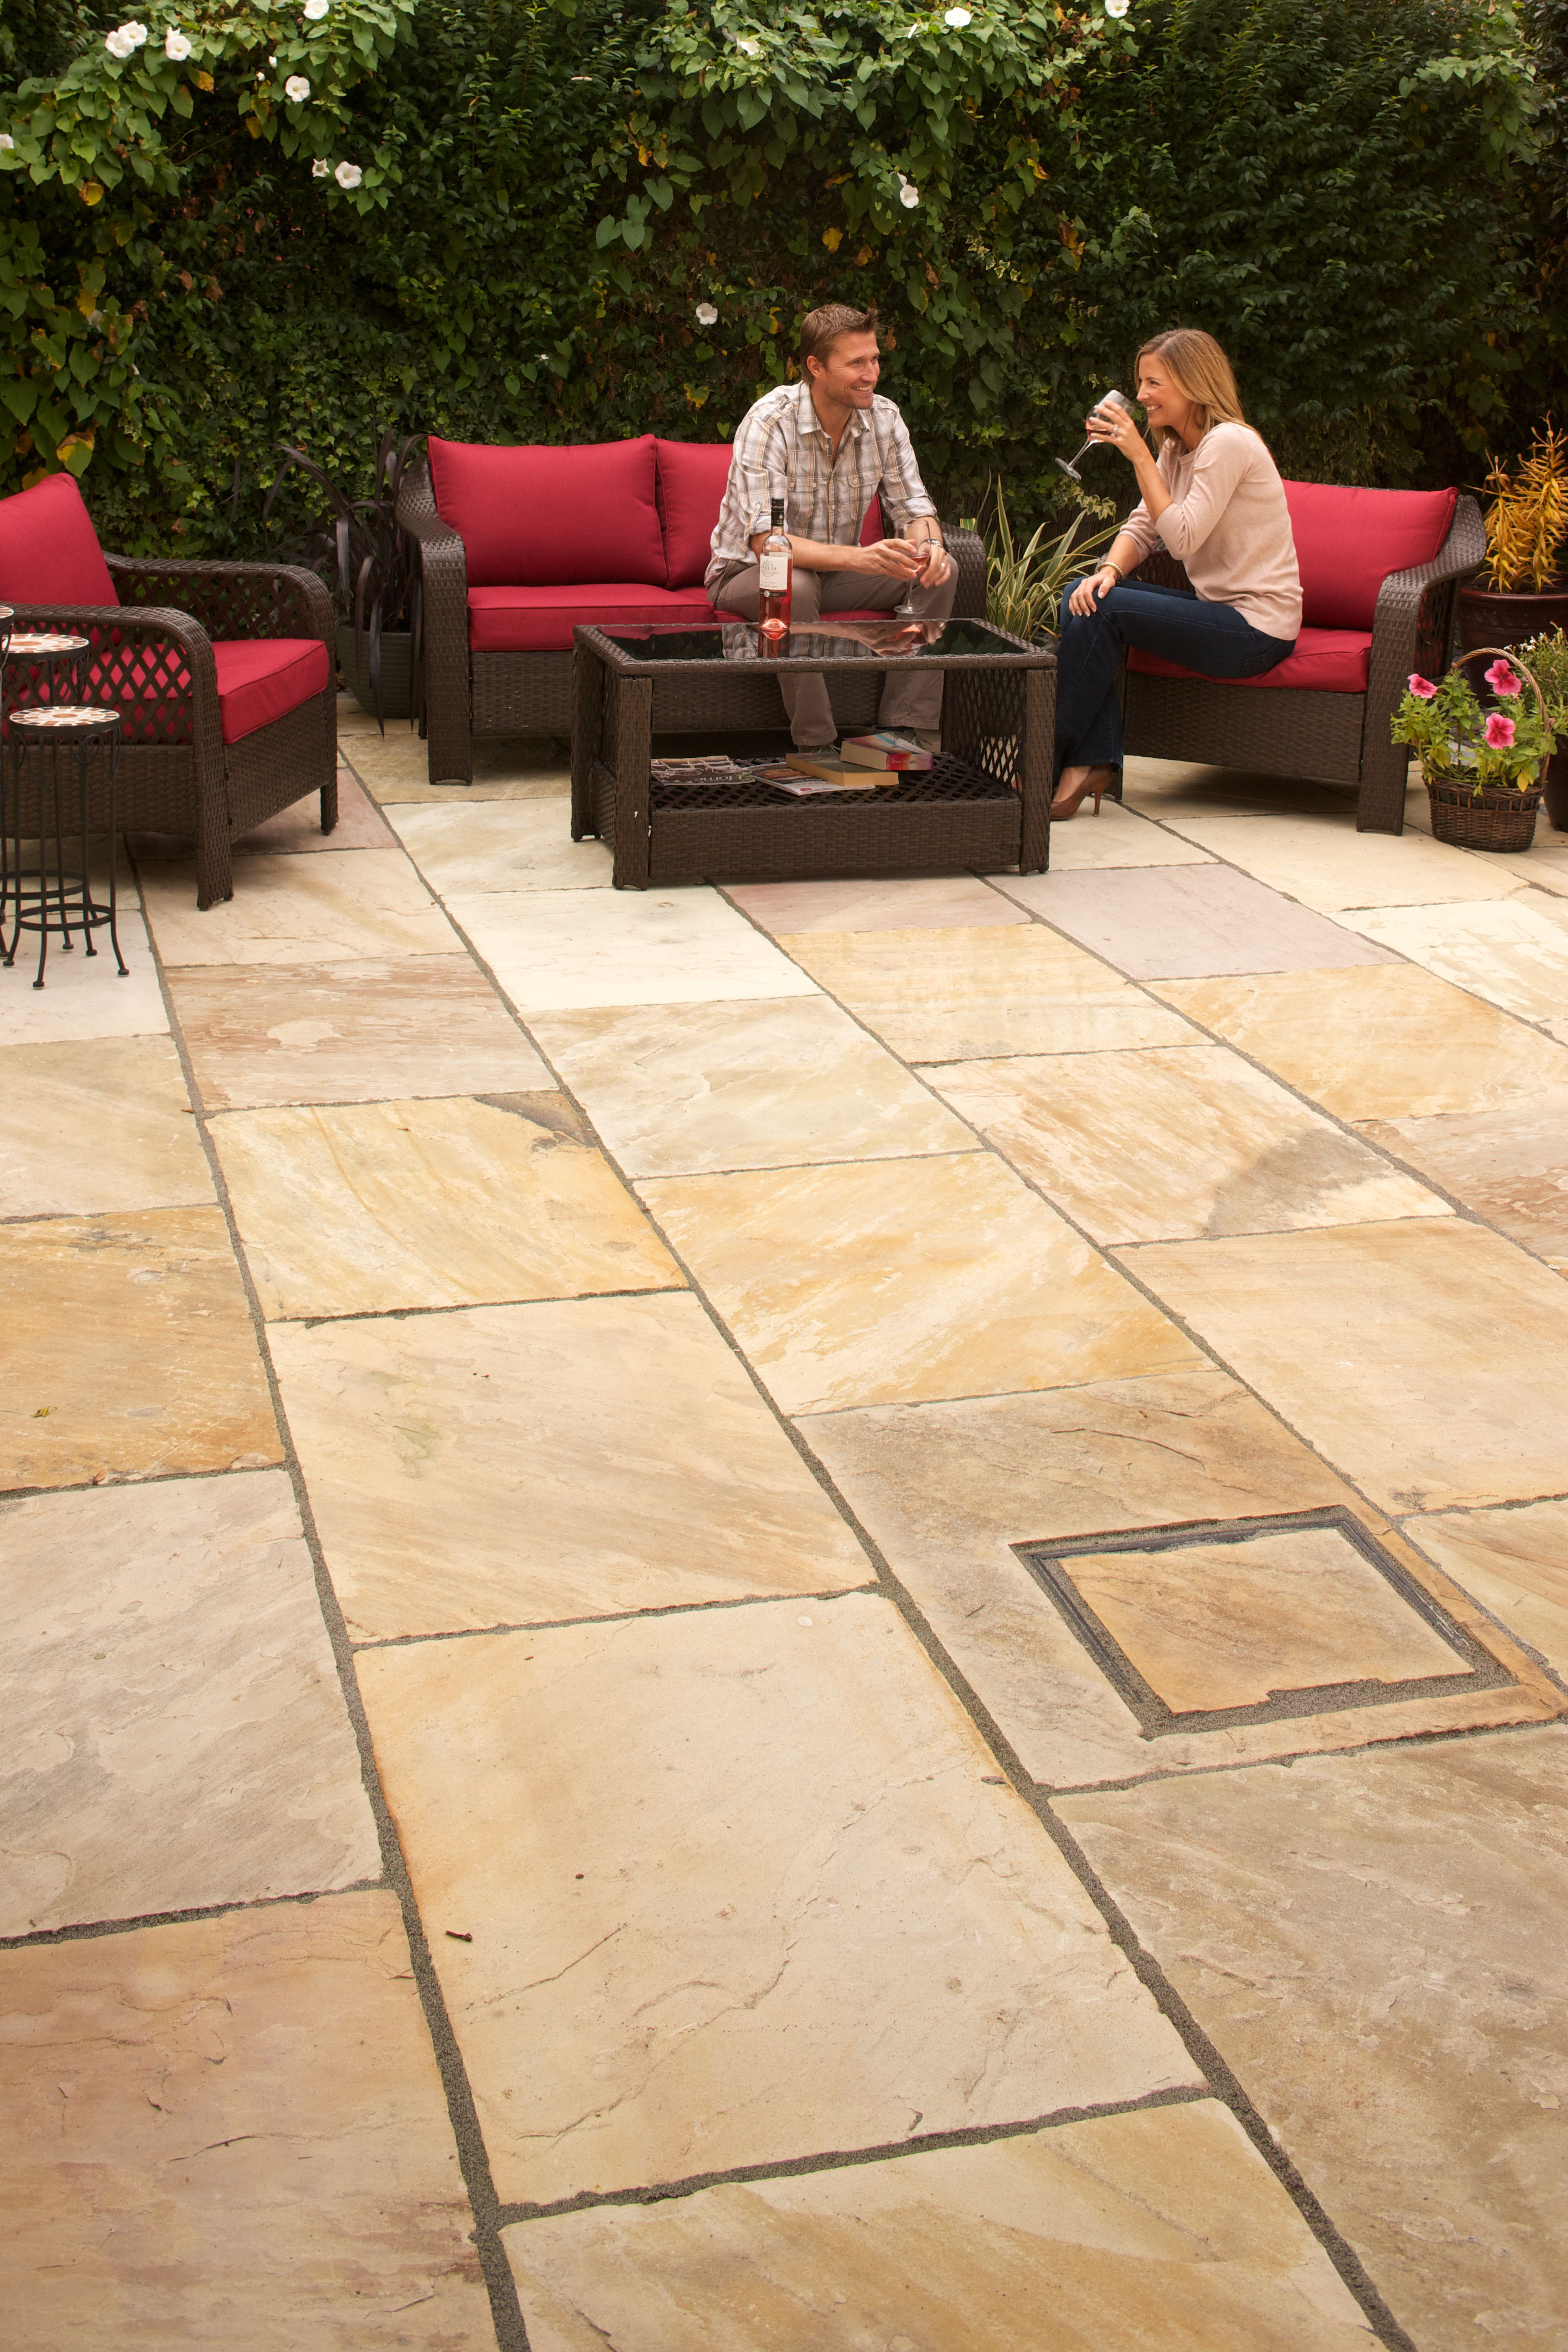 Cleaning Indian Sandstone Paving Slabs How To Clean Indian Sandstone Flags Marshalls